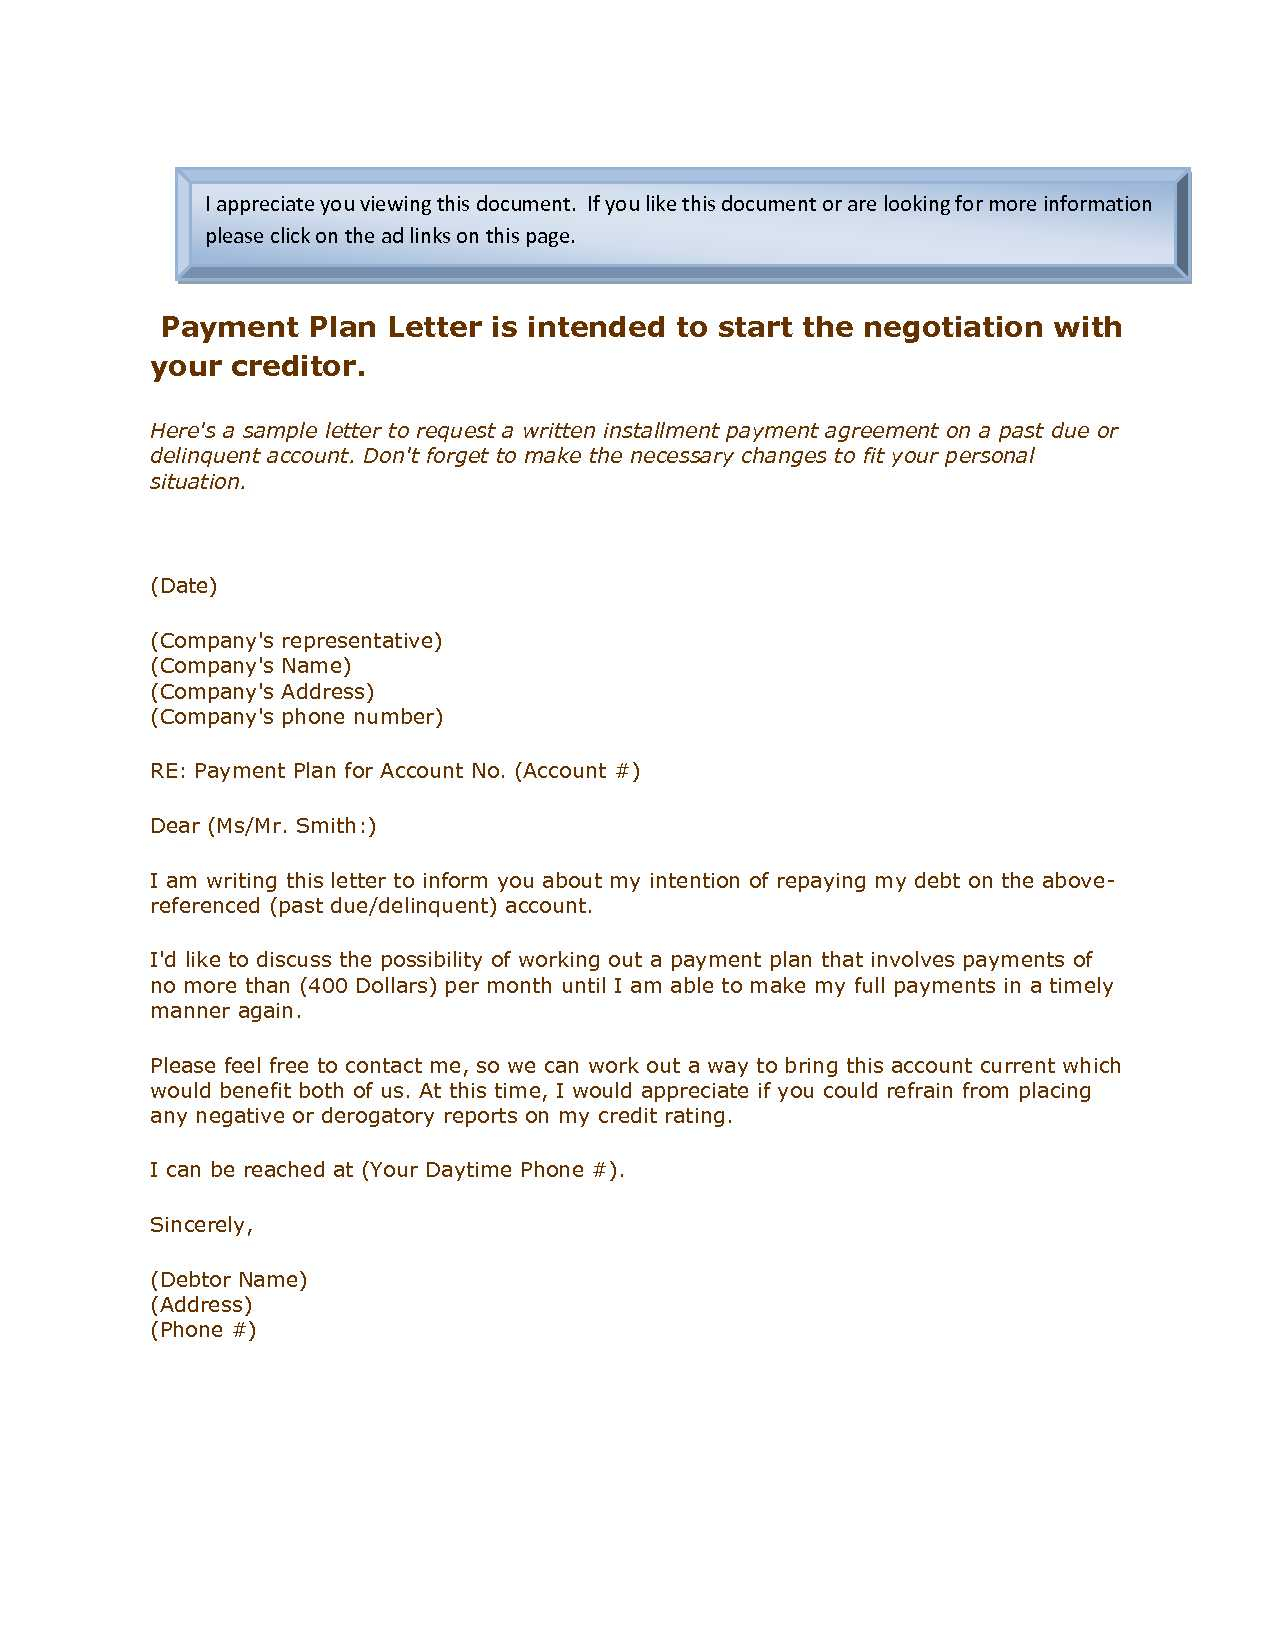 Payment Arrangement Letter Template - How to Write A Payment Agreement Letter Gallery Letter format